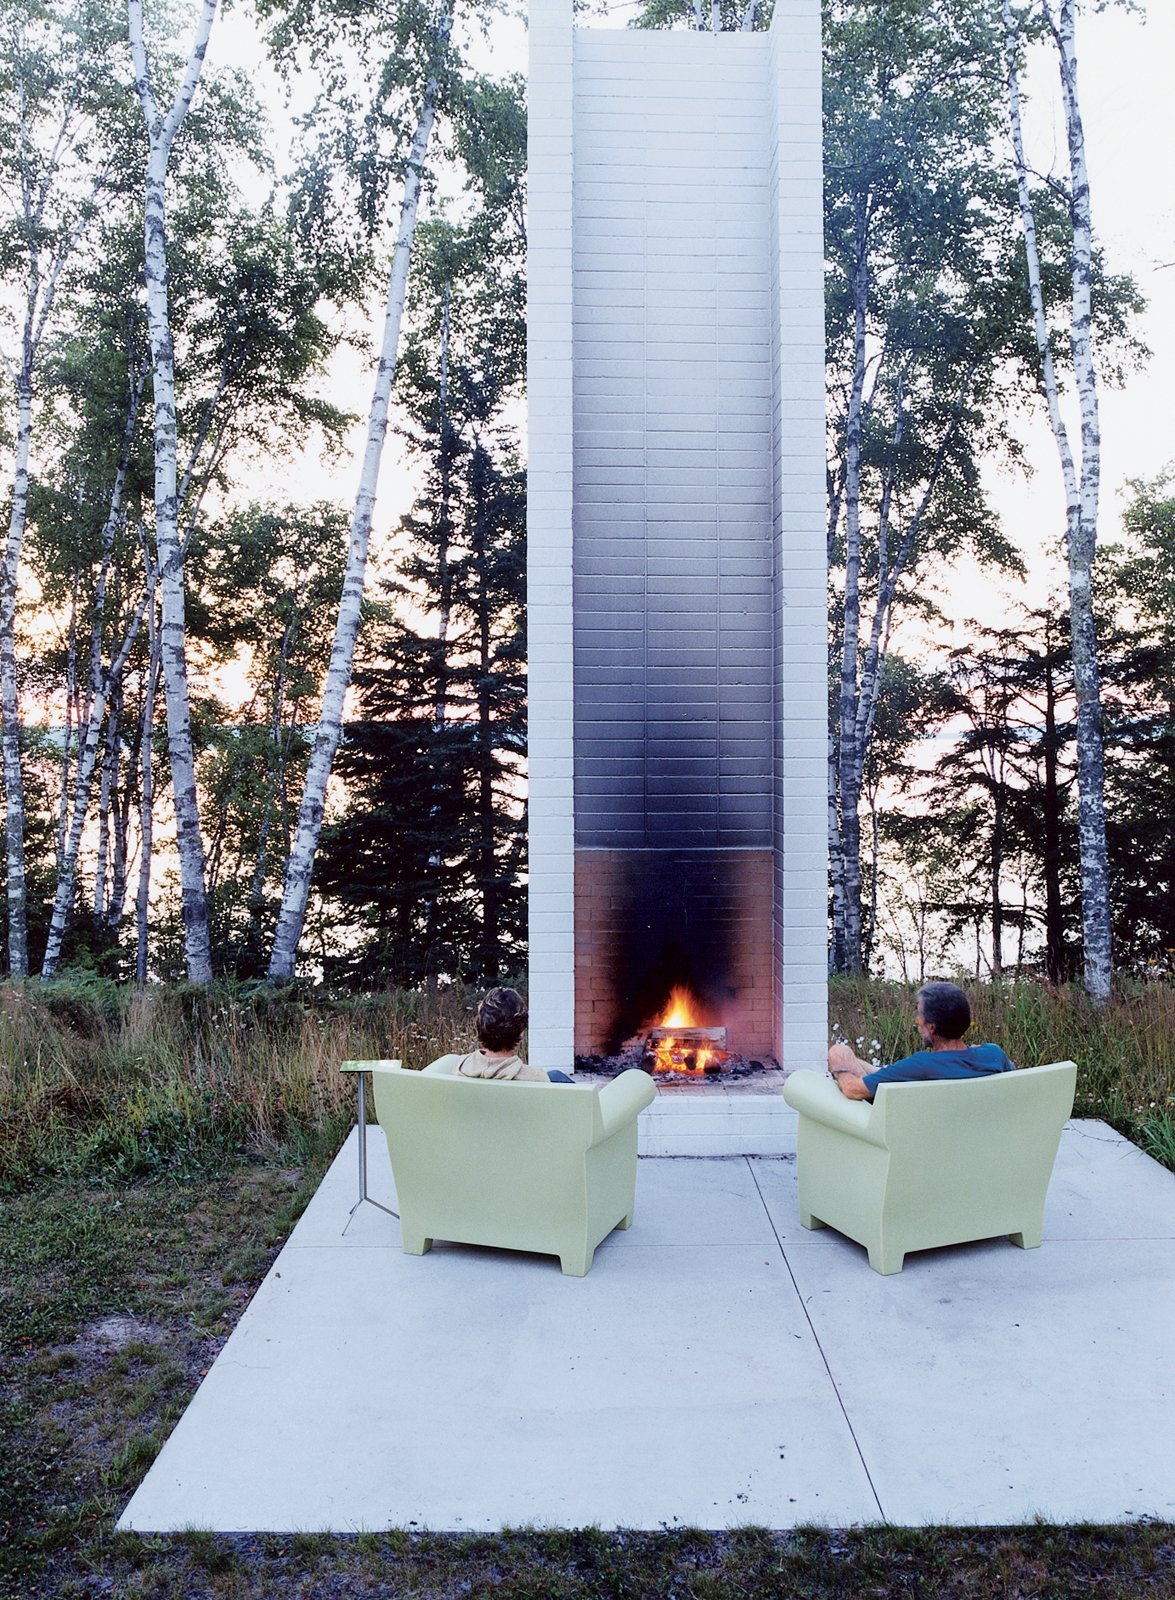 """Philippe Starck's outdoor chairs for Kartell provide cozy fireside seating. These and the sofa version were selected by Salmela. """"They're very much an art form,"""" he says. Tagged: Outdoor, Small Patio, Porch, Deck, and Concrete Patio, Porch, Deck.  Photo 2 of 10 in Off the Beaten Path"""